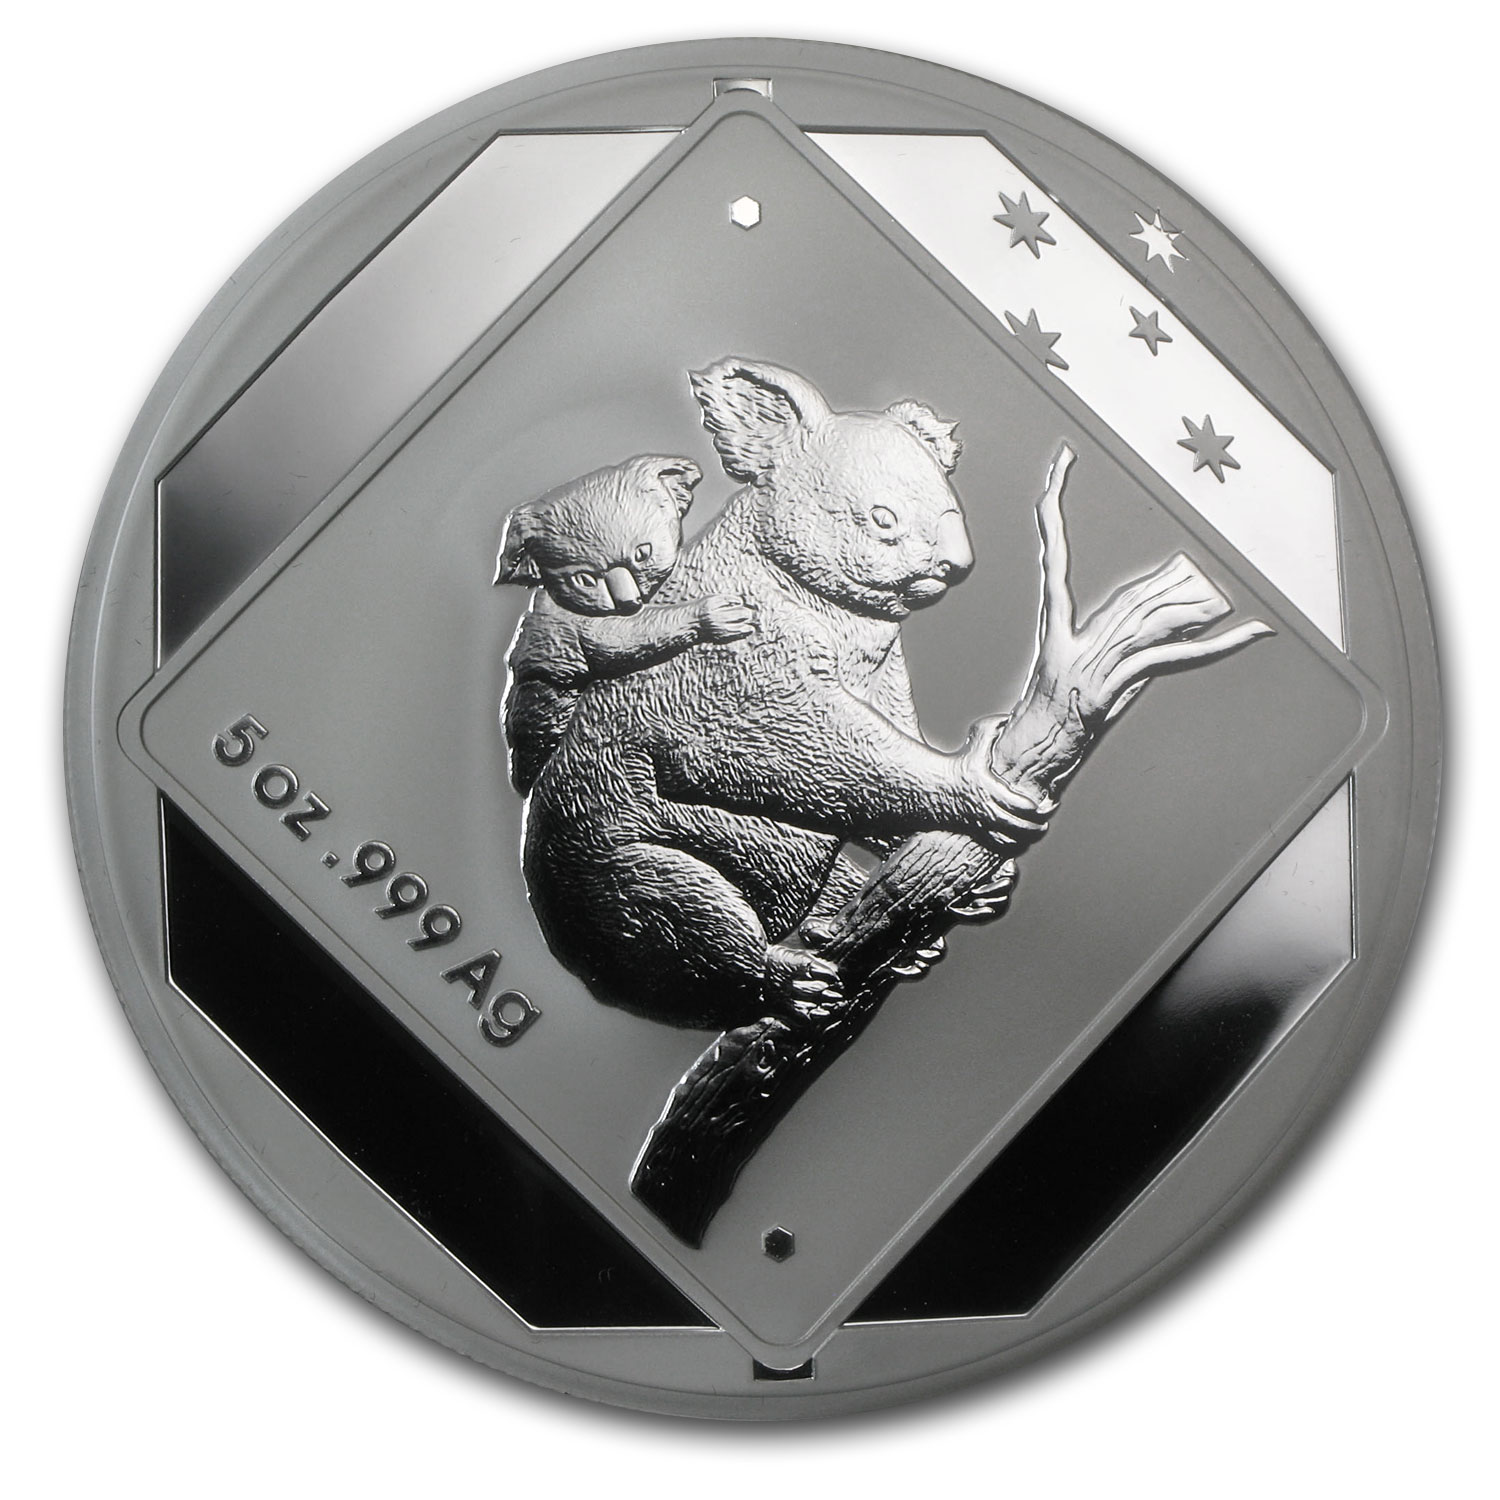 2014 Australia 5 oz Silver Koala Road Sign